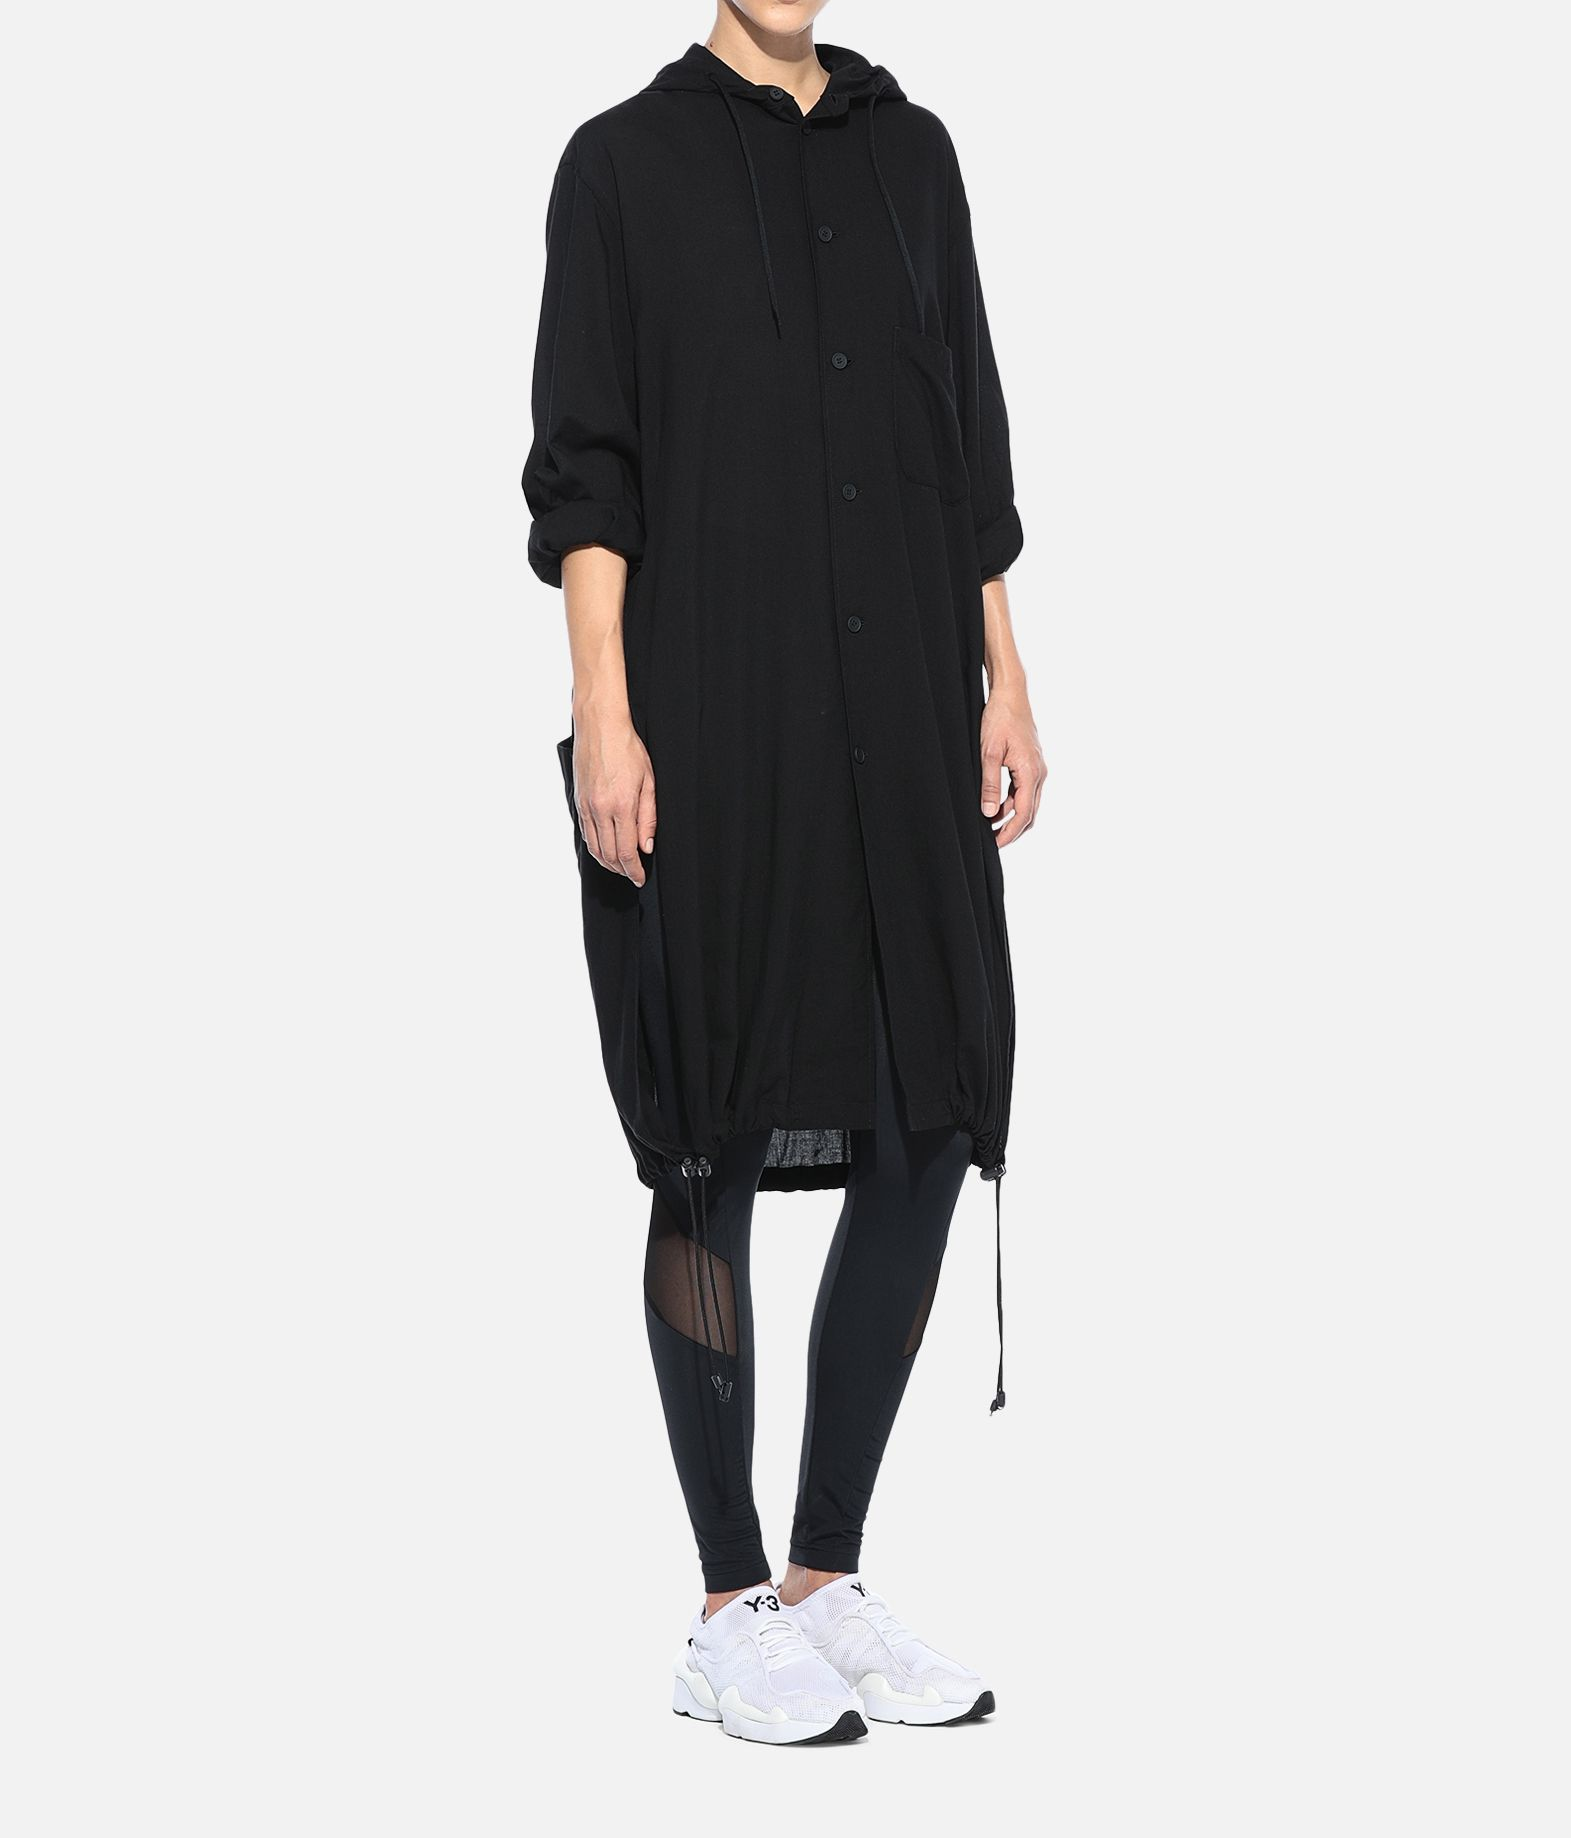 Y-3 Y-3 Hooded Long Shirt Long sleeve shirt Woman a